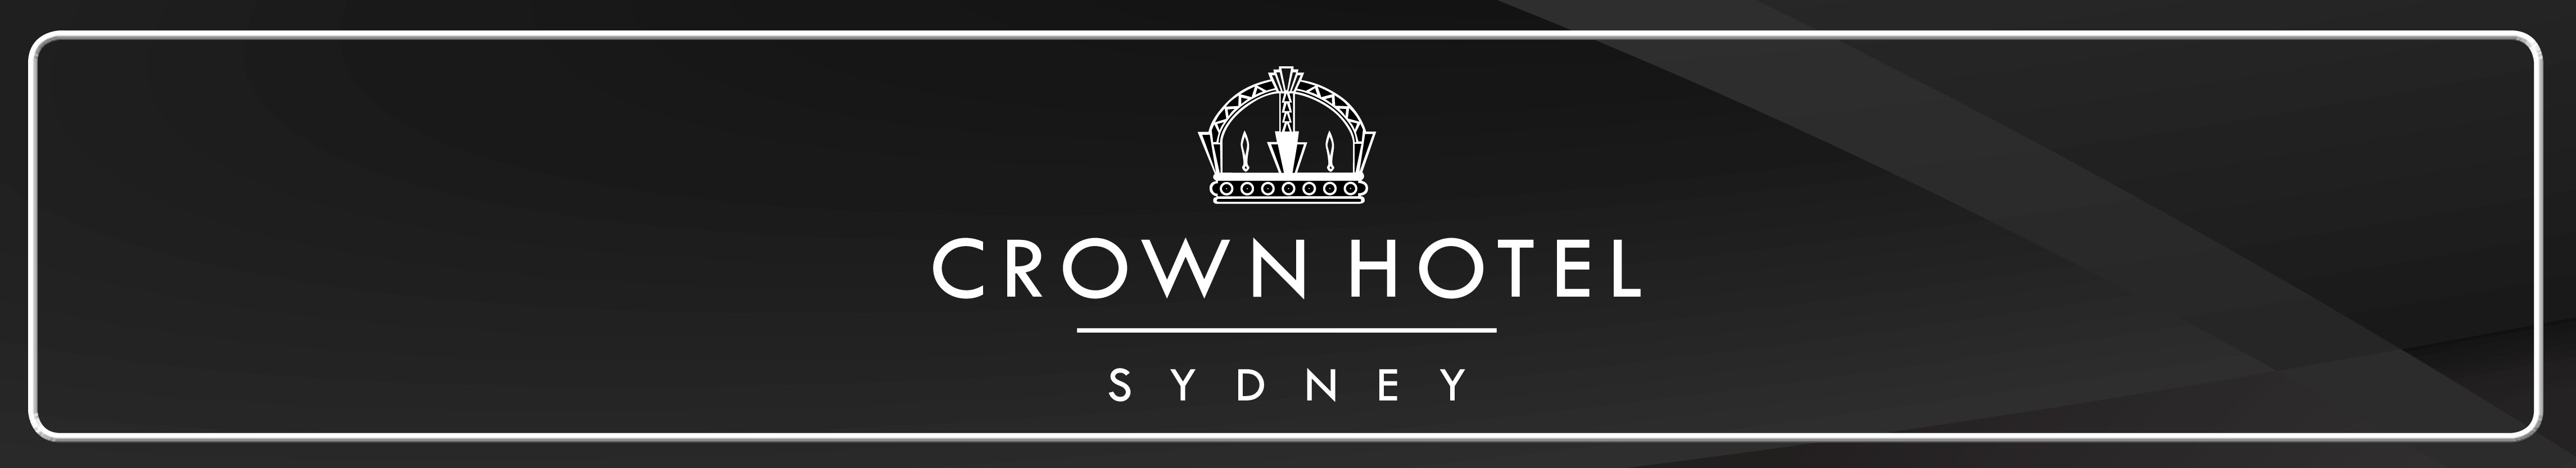 Crown casino jobs website